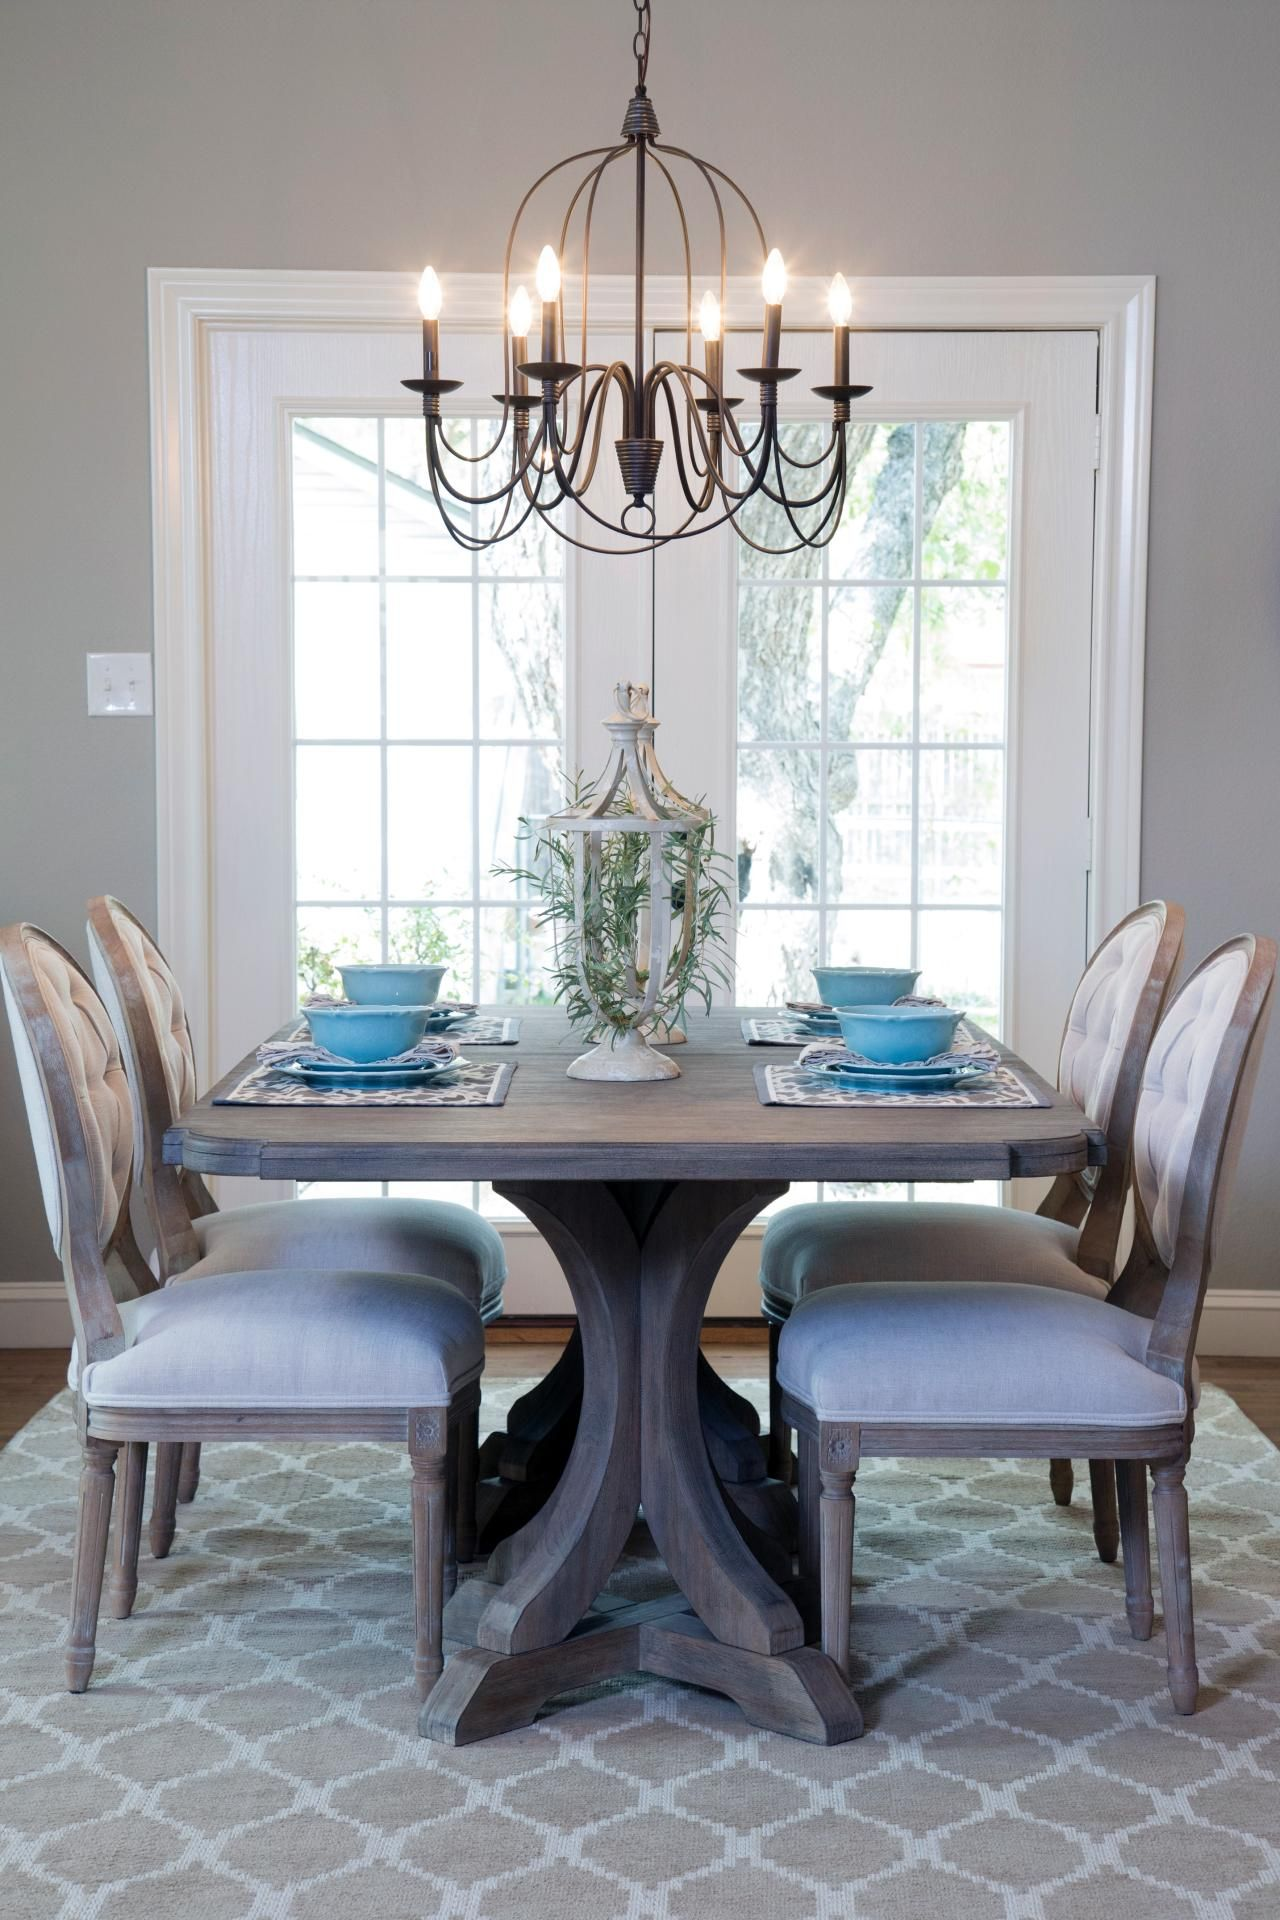 Dining Room Chandelier living room list of things House Designer